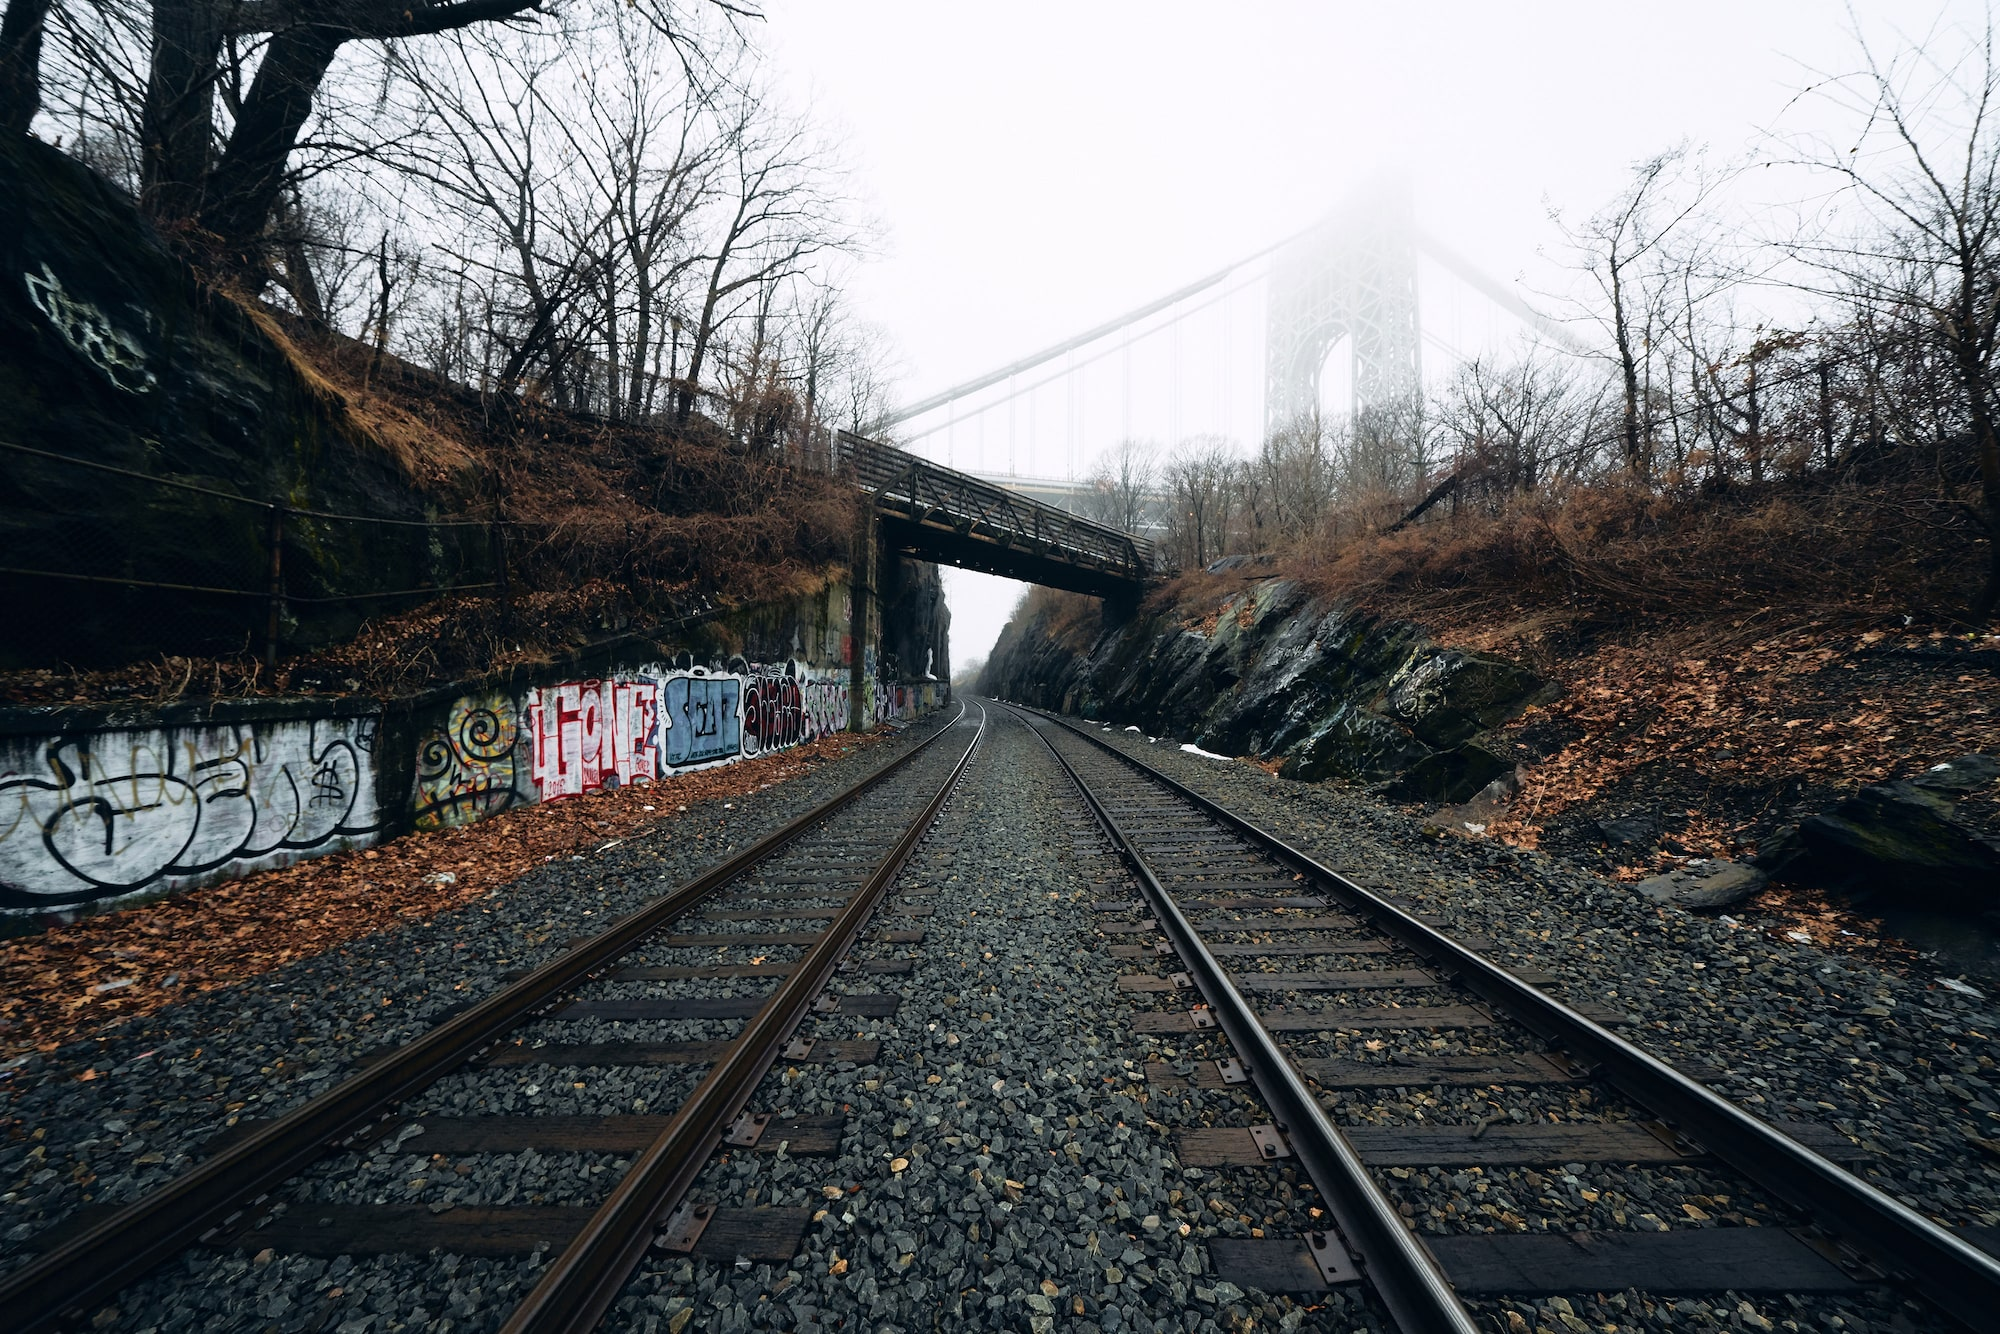 Ron Timehin sony alpha 7RM3 train tracks in new york with the brooklyn bridge visible in the mist